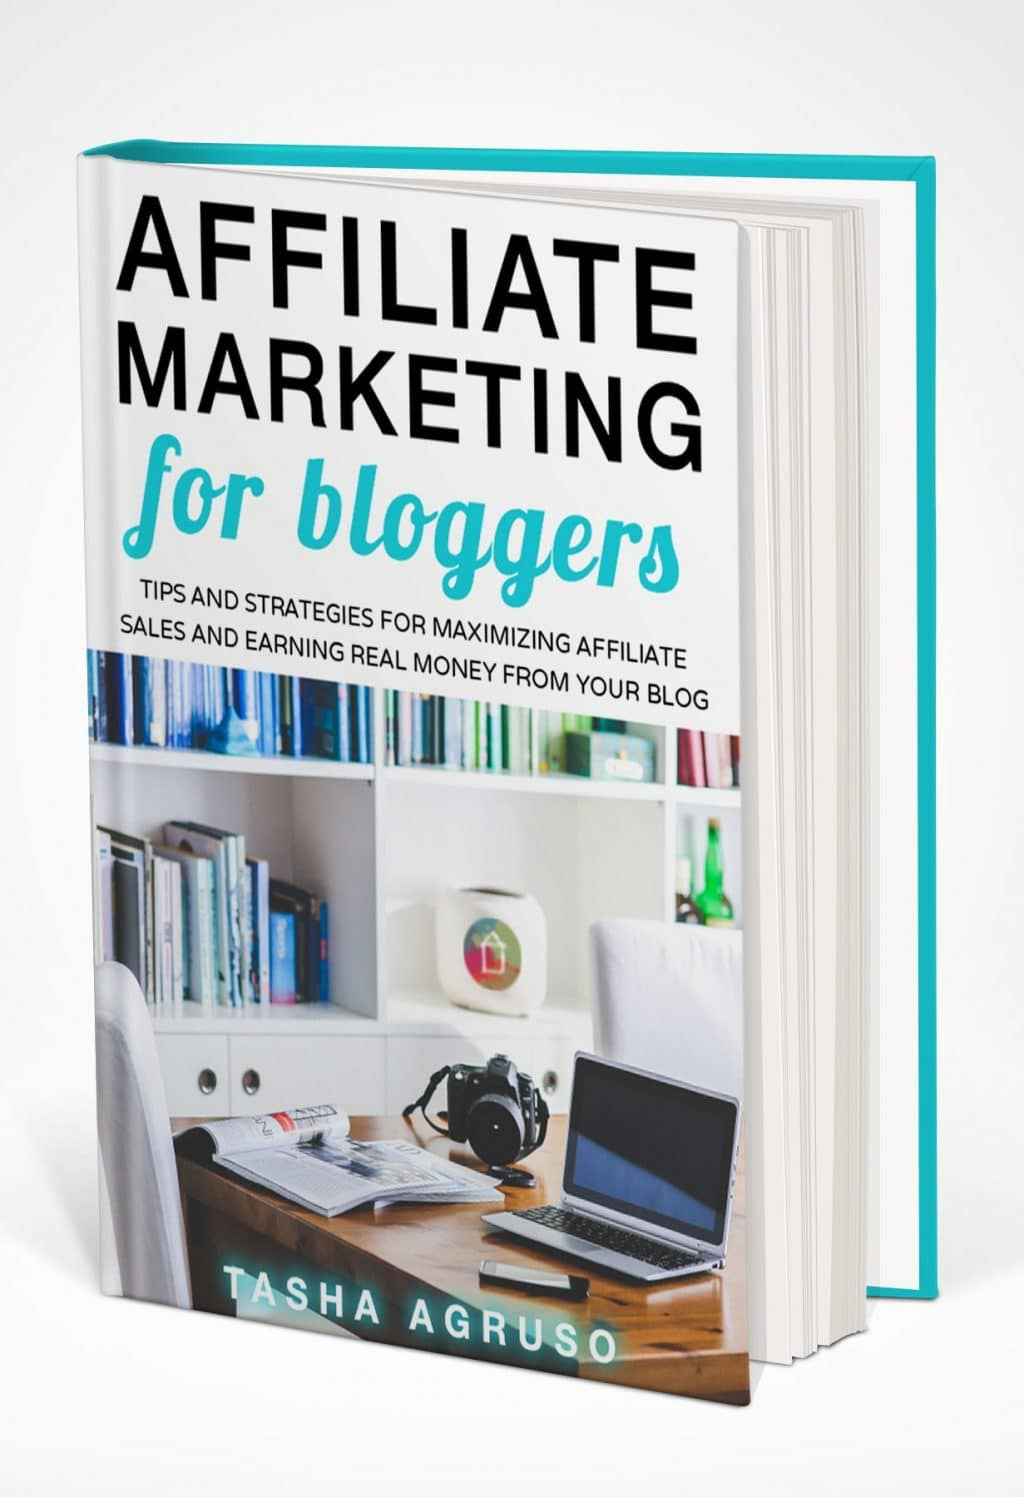 The Affiliate Marketing for Bloggers eBook by Tasha Agruso is an important tool for bloggers